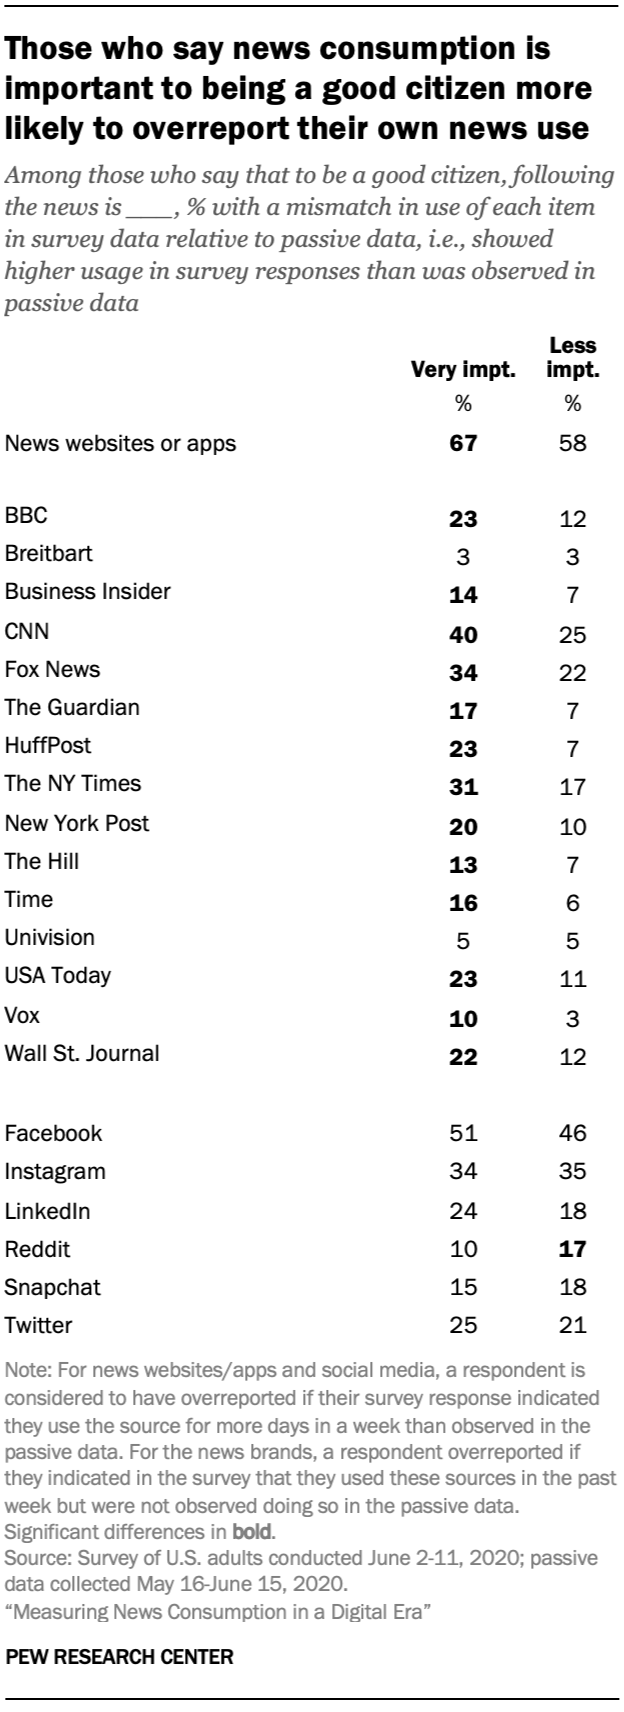 Those who say news consumption is important to being a good citizen more likely to overreport their own news use